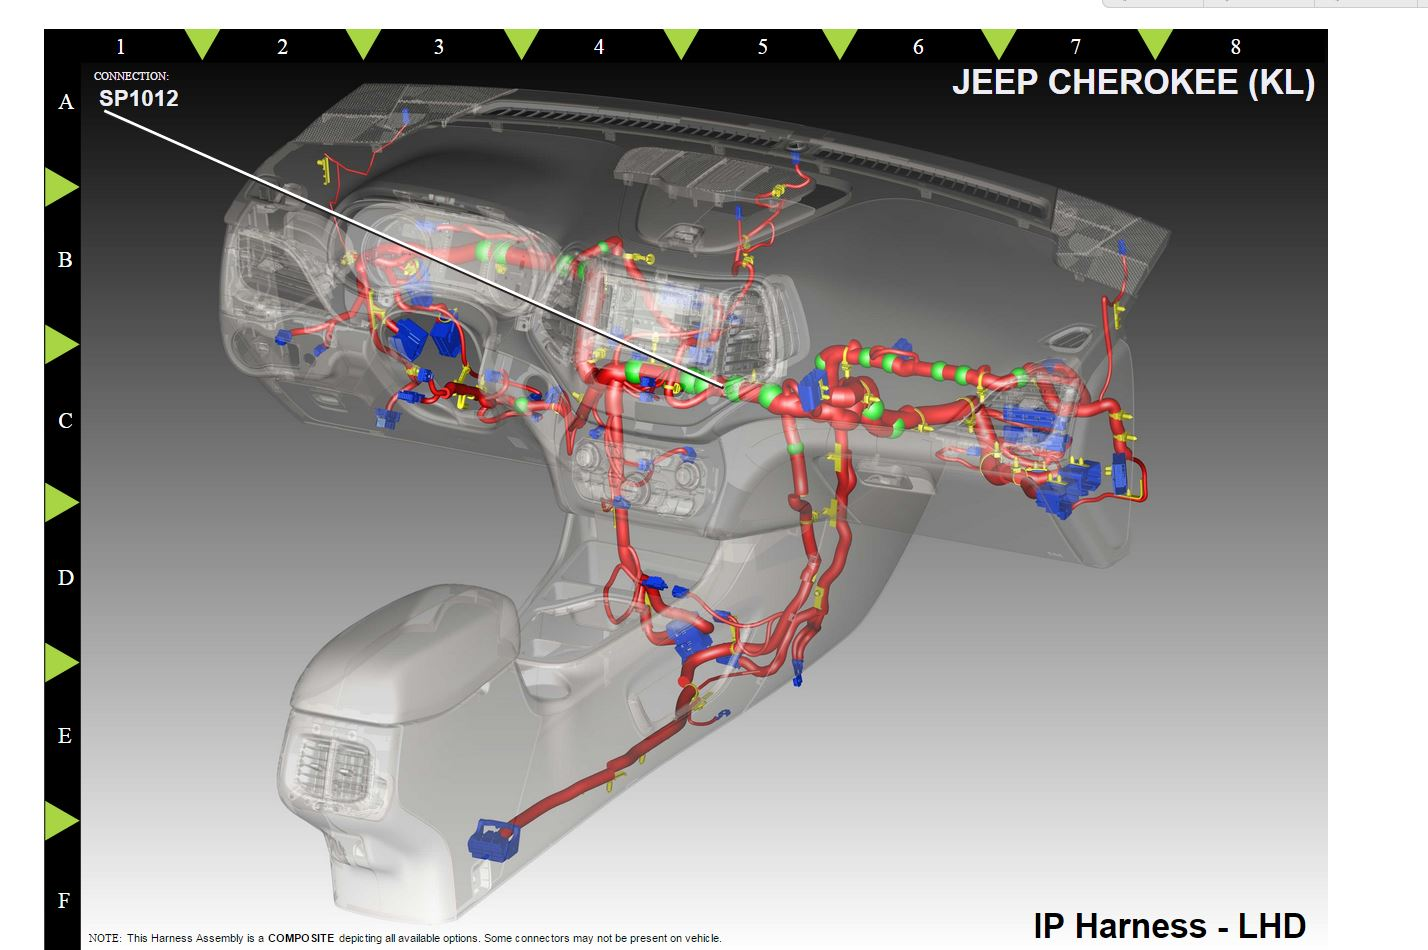 Wiring Diagram Resource Bonanza Here... - 2014+ Jeep Cherokee Forums